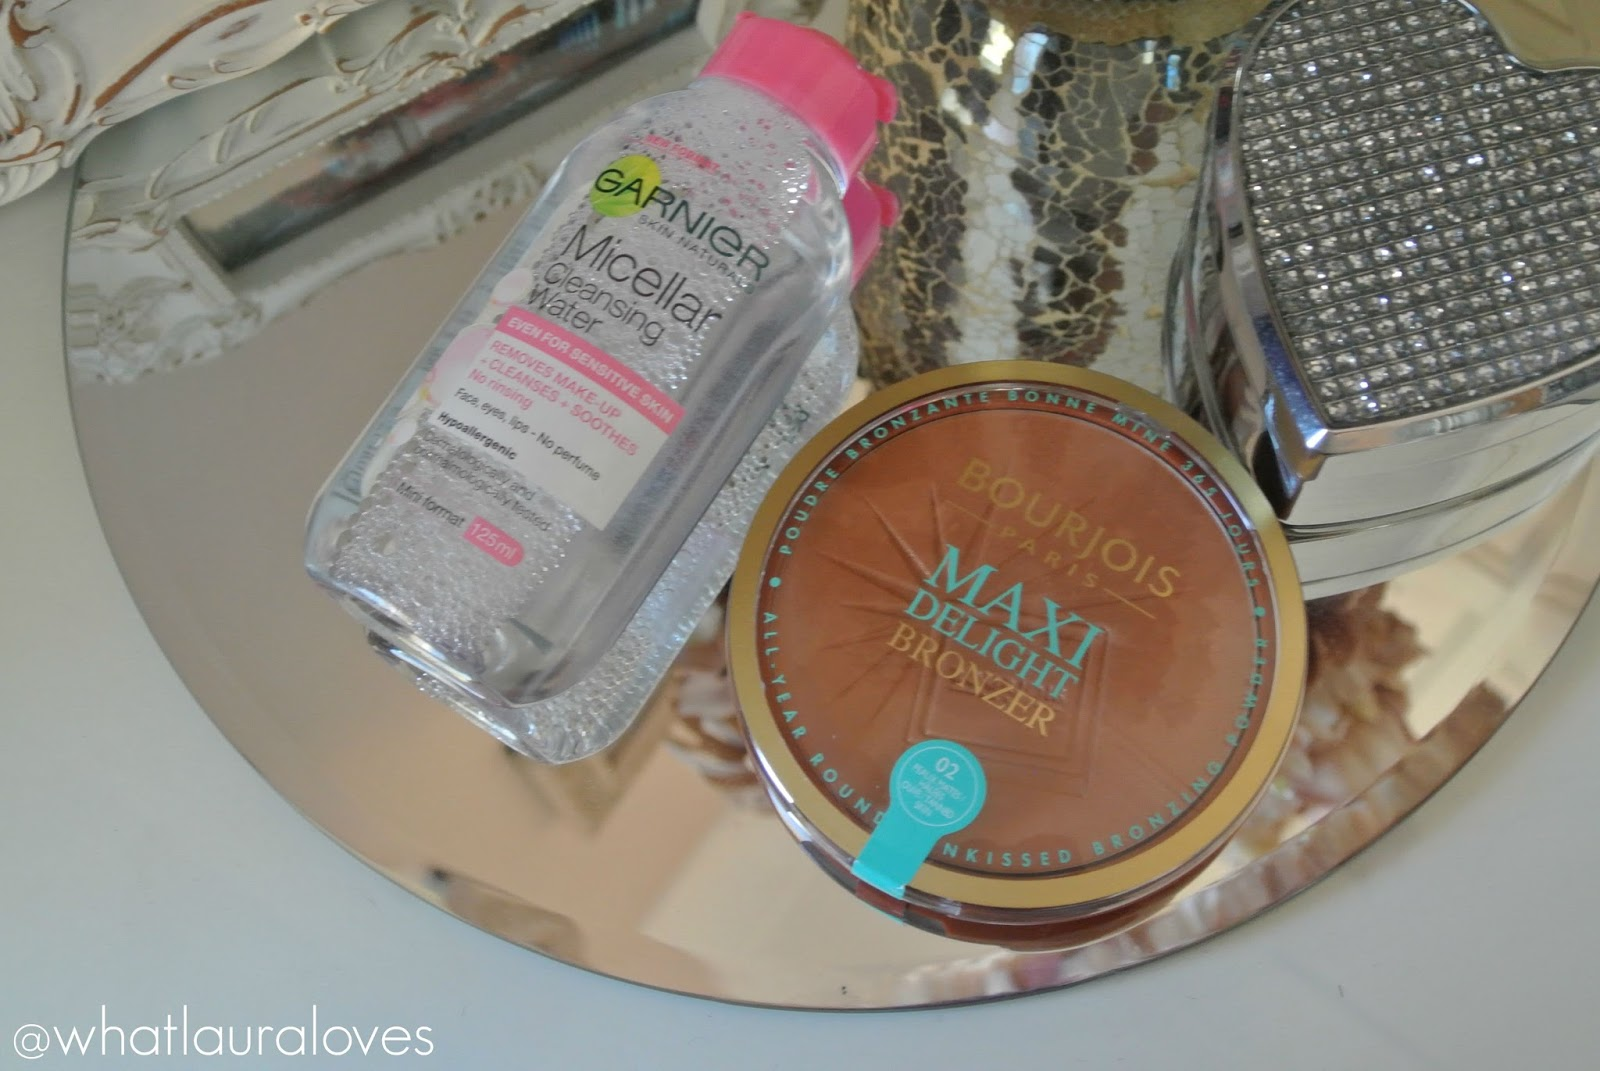 Boots affordable drugstore cheap makeup beauty products